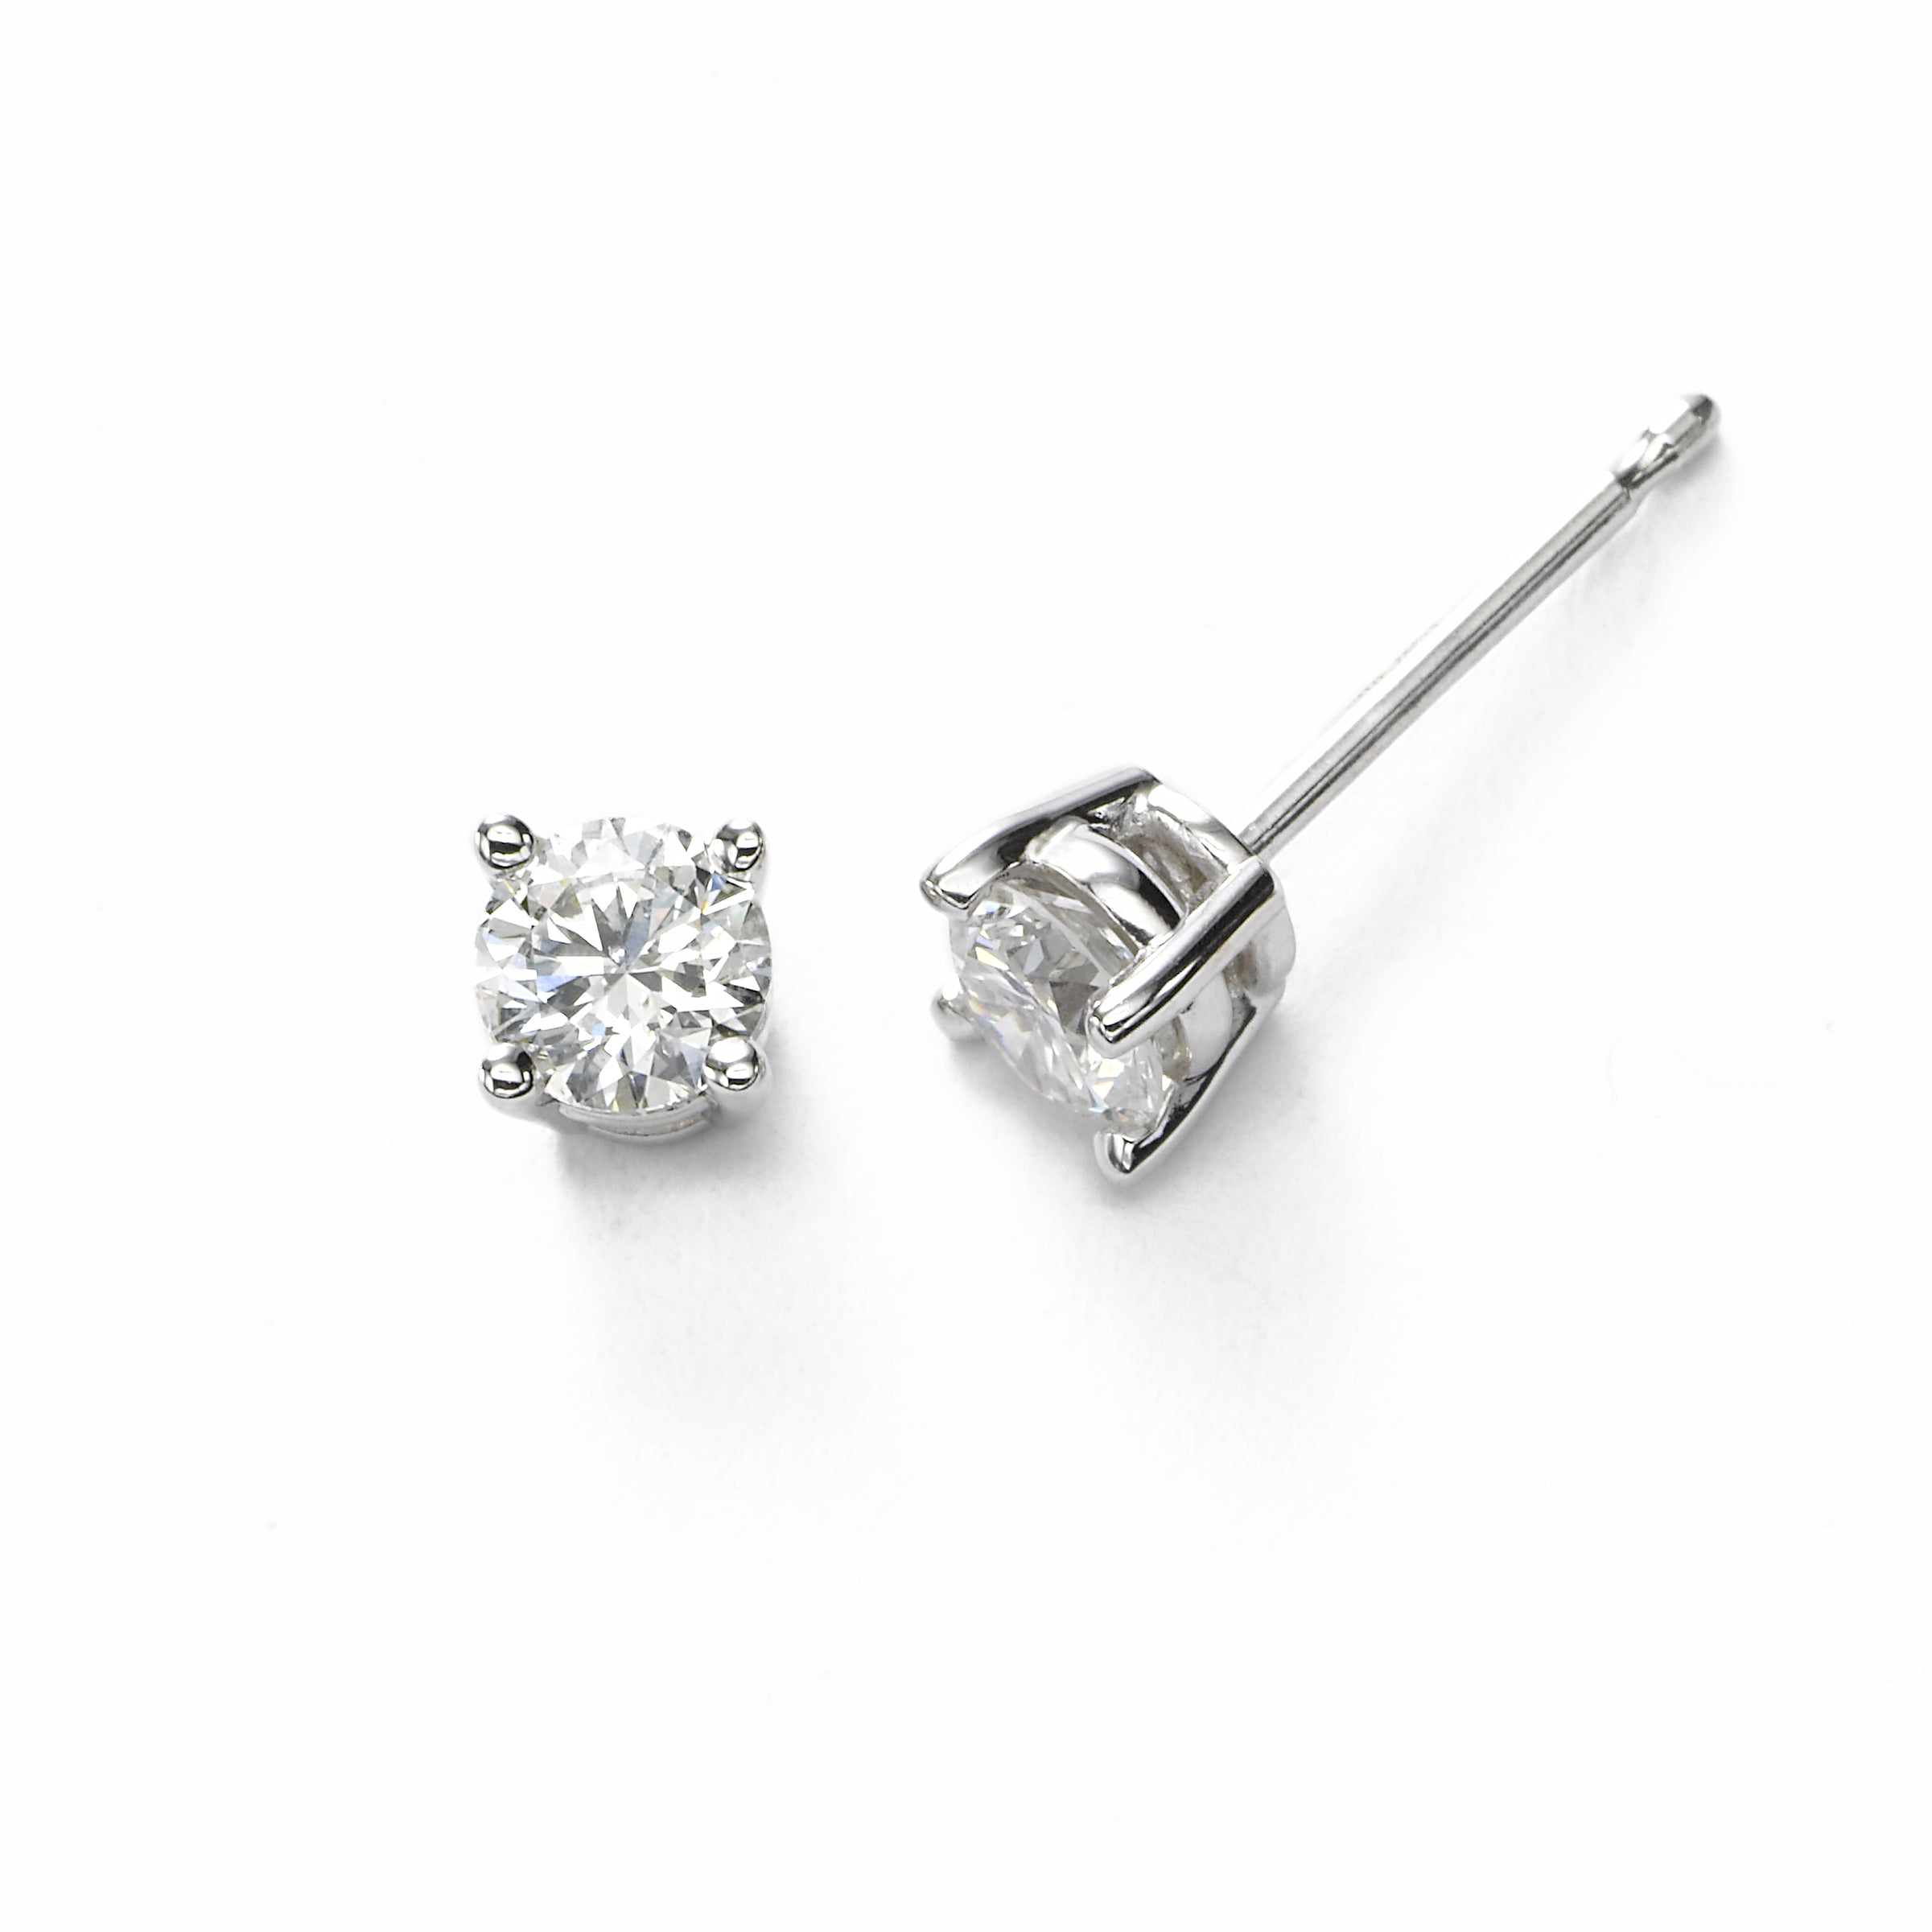 Diamond Stud Earrings, .40 Carat Total, SI1/SI2, 14K White Gold